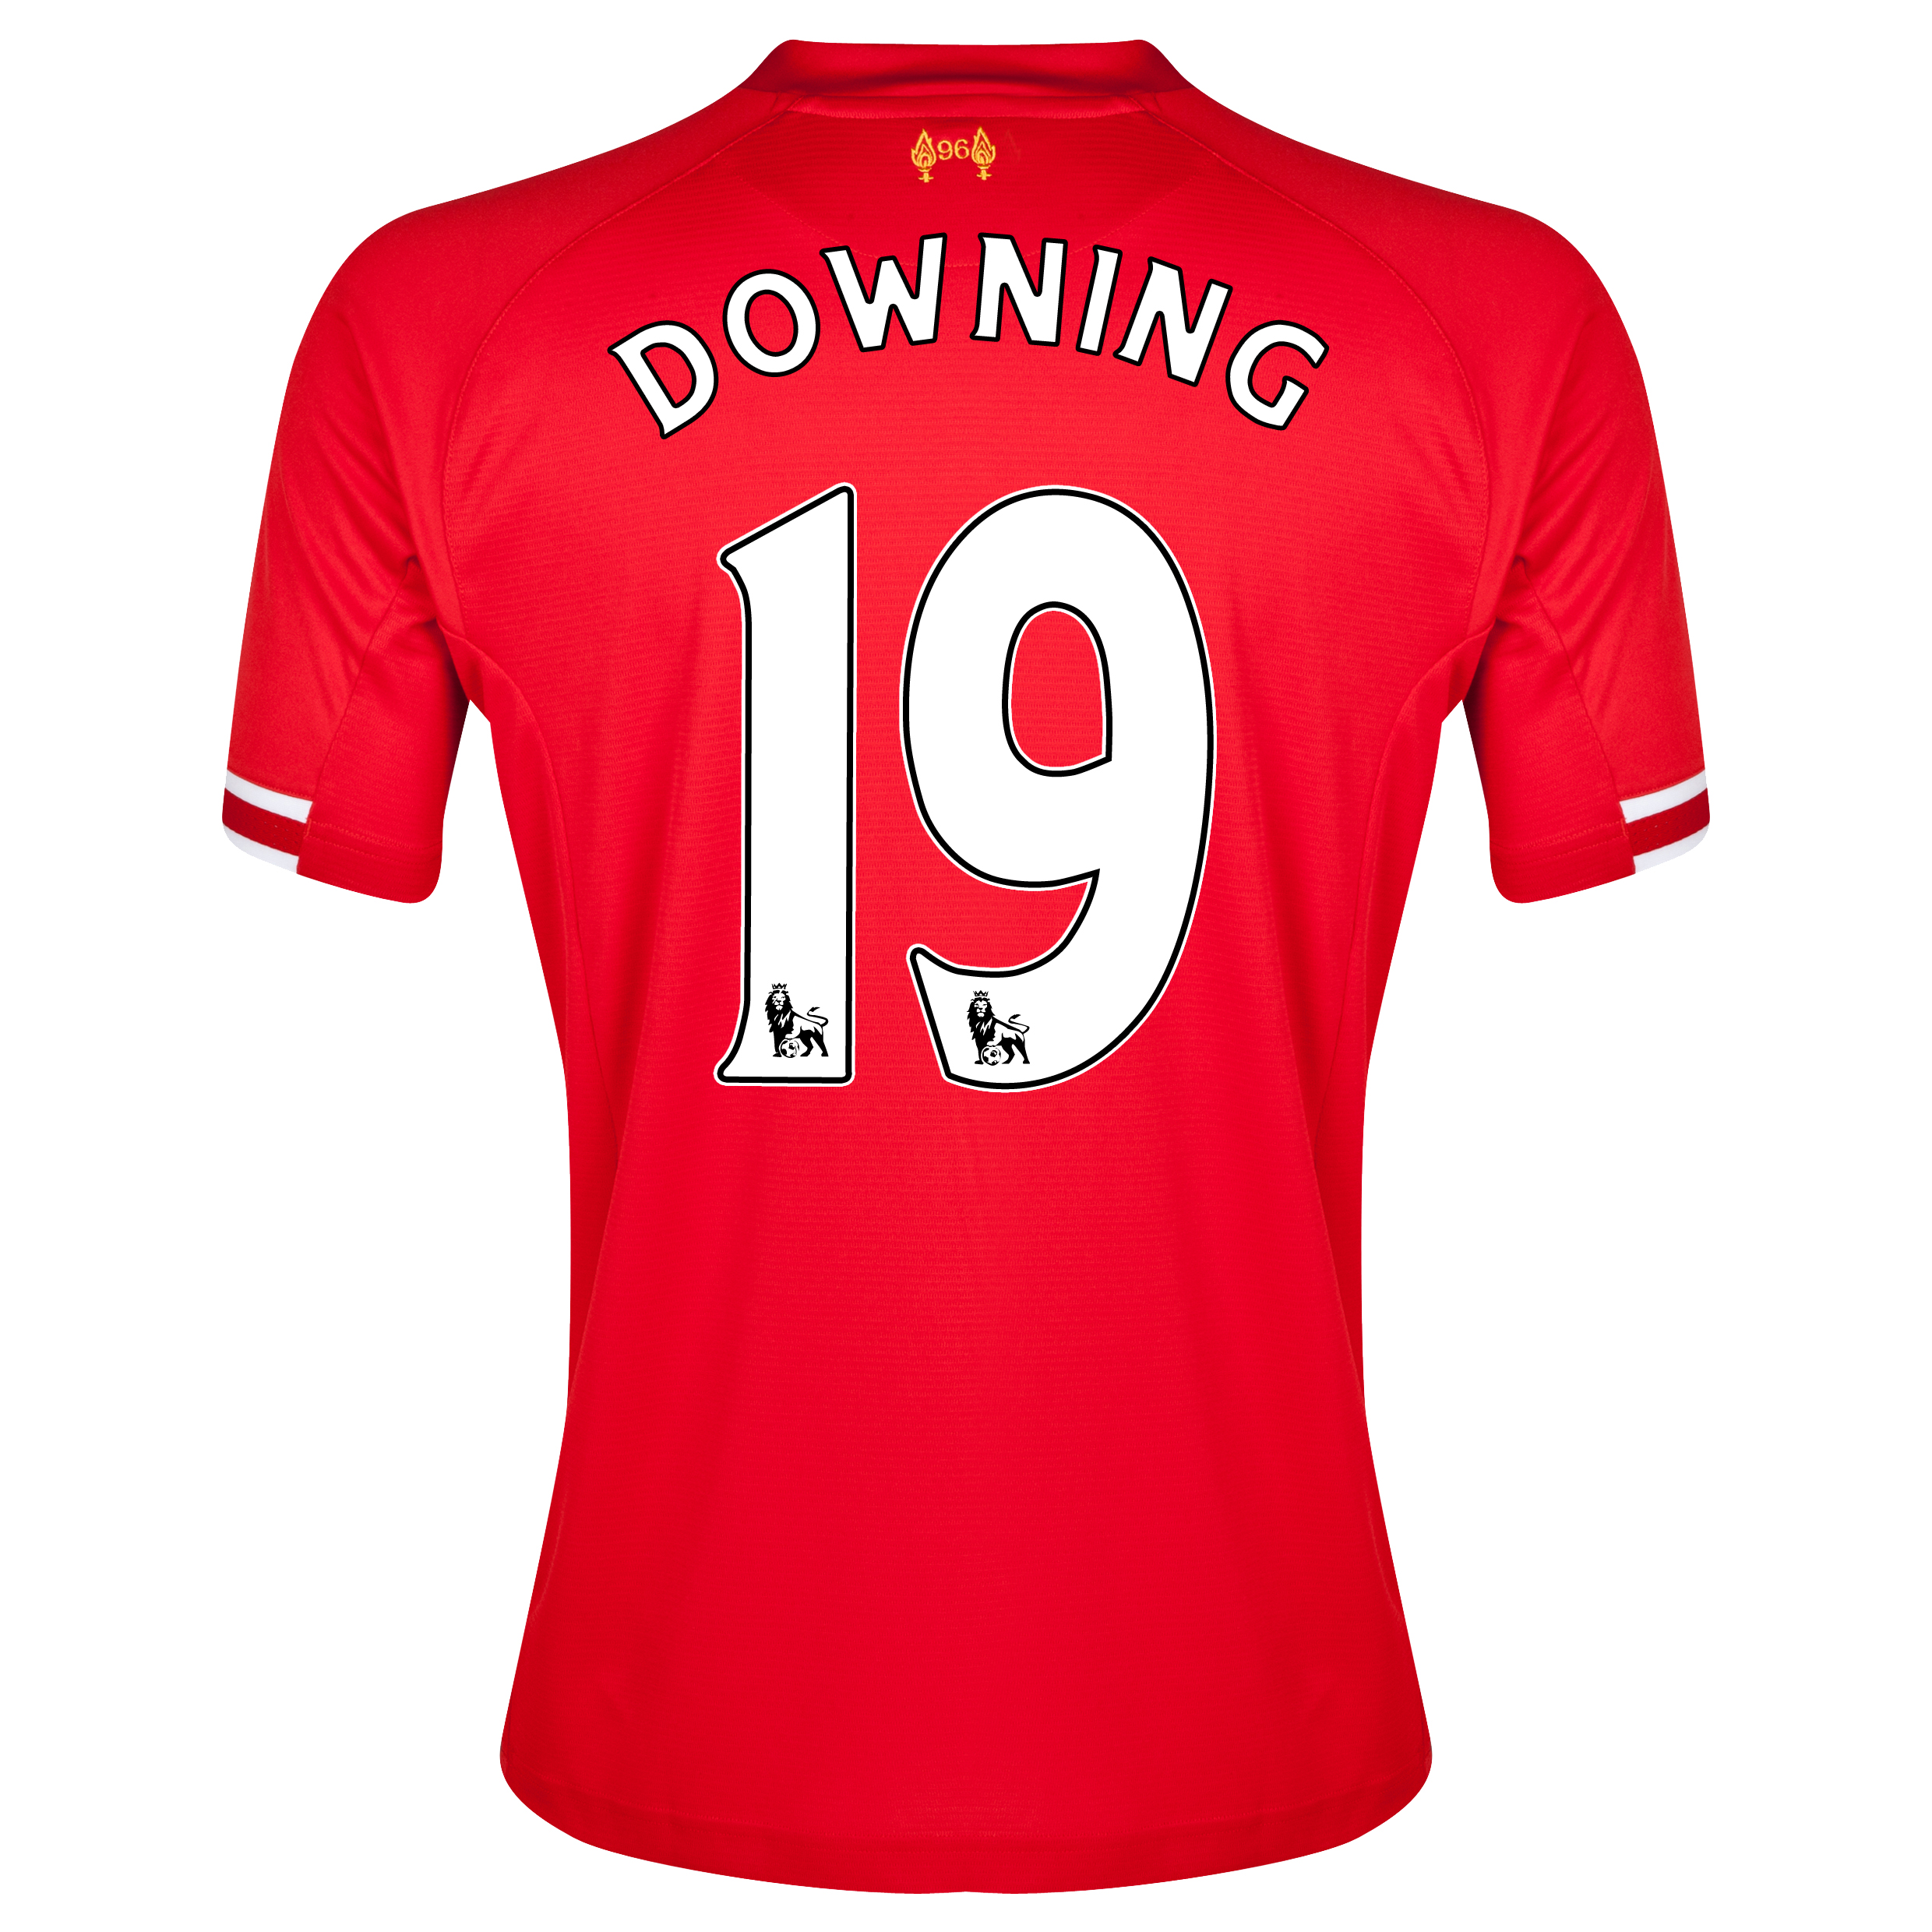 Liverpool Home Shirt 2013/14 kids with Downing 19 printing